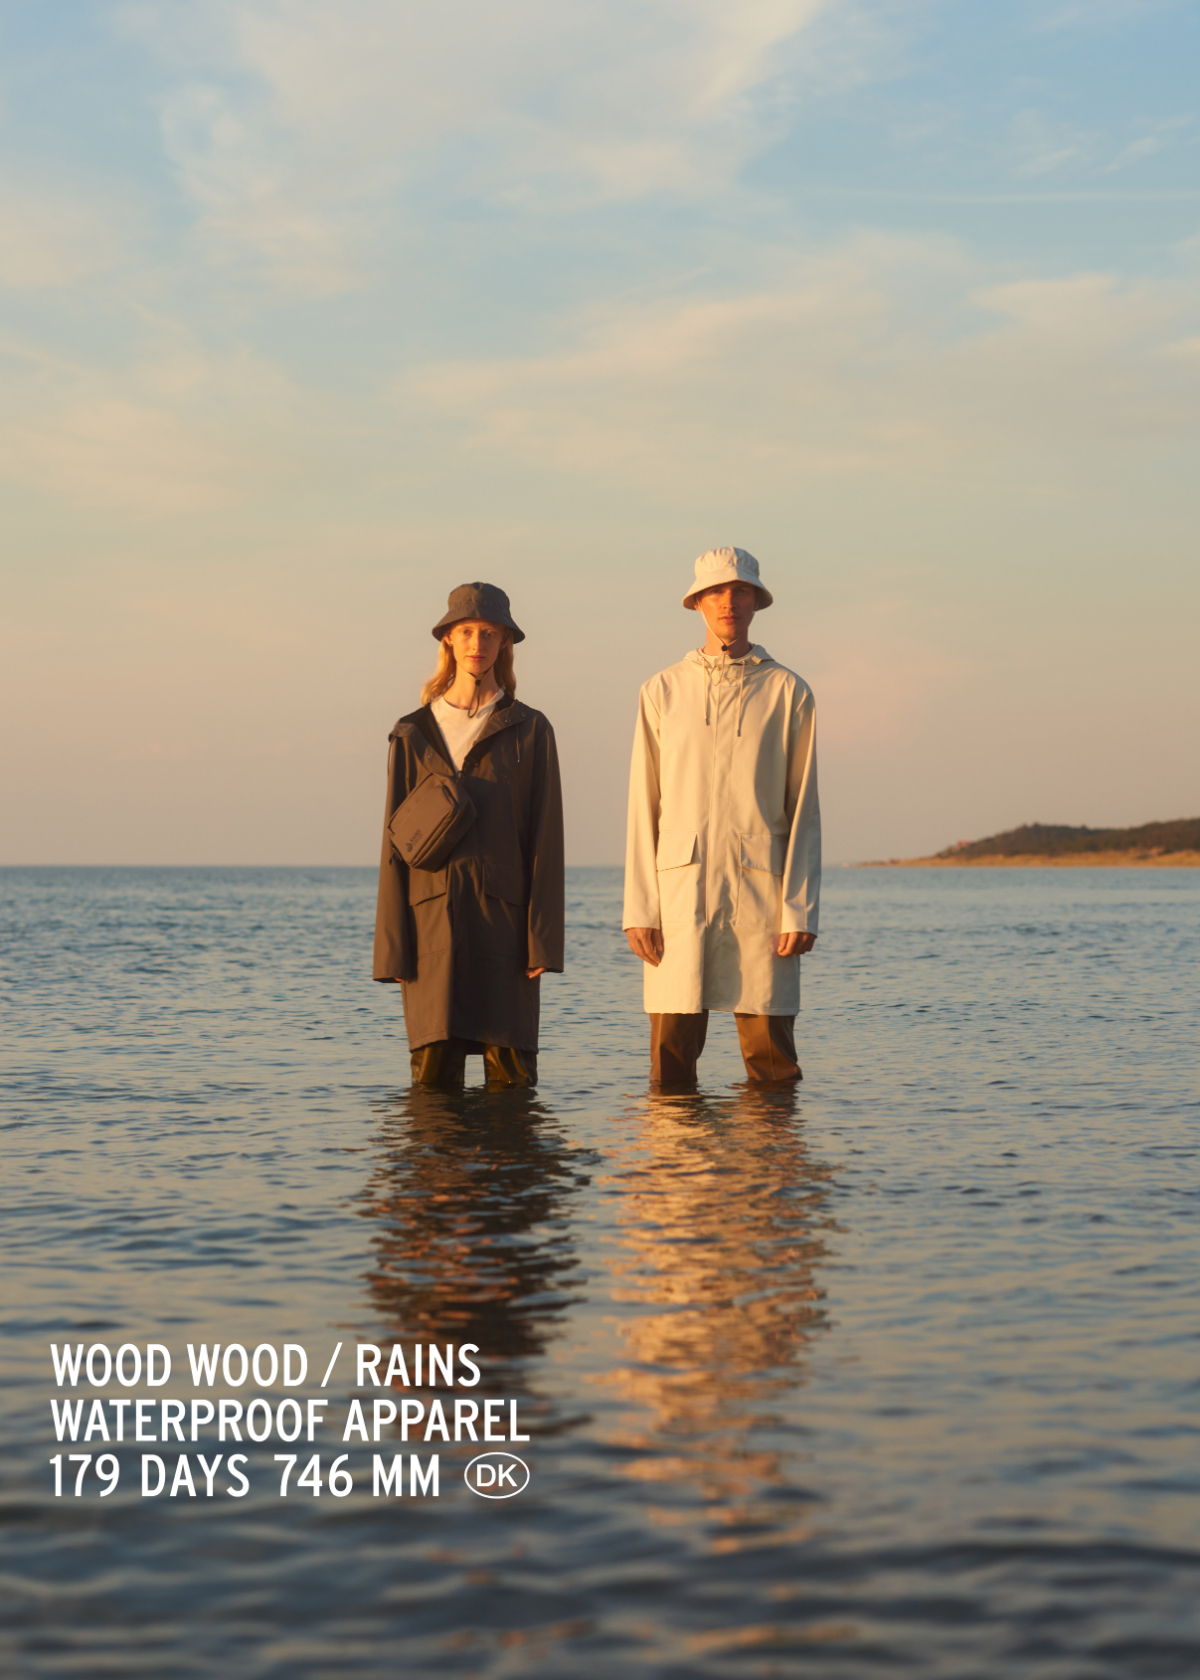 Wood Wood and Rains Create Scandinavian-Themed Rain-Wear